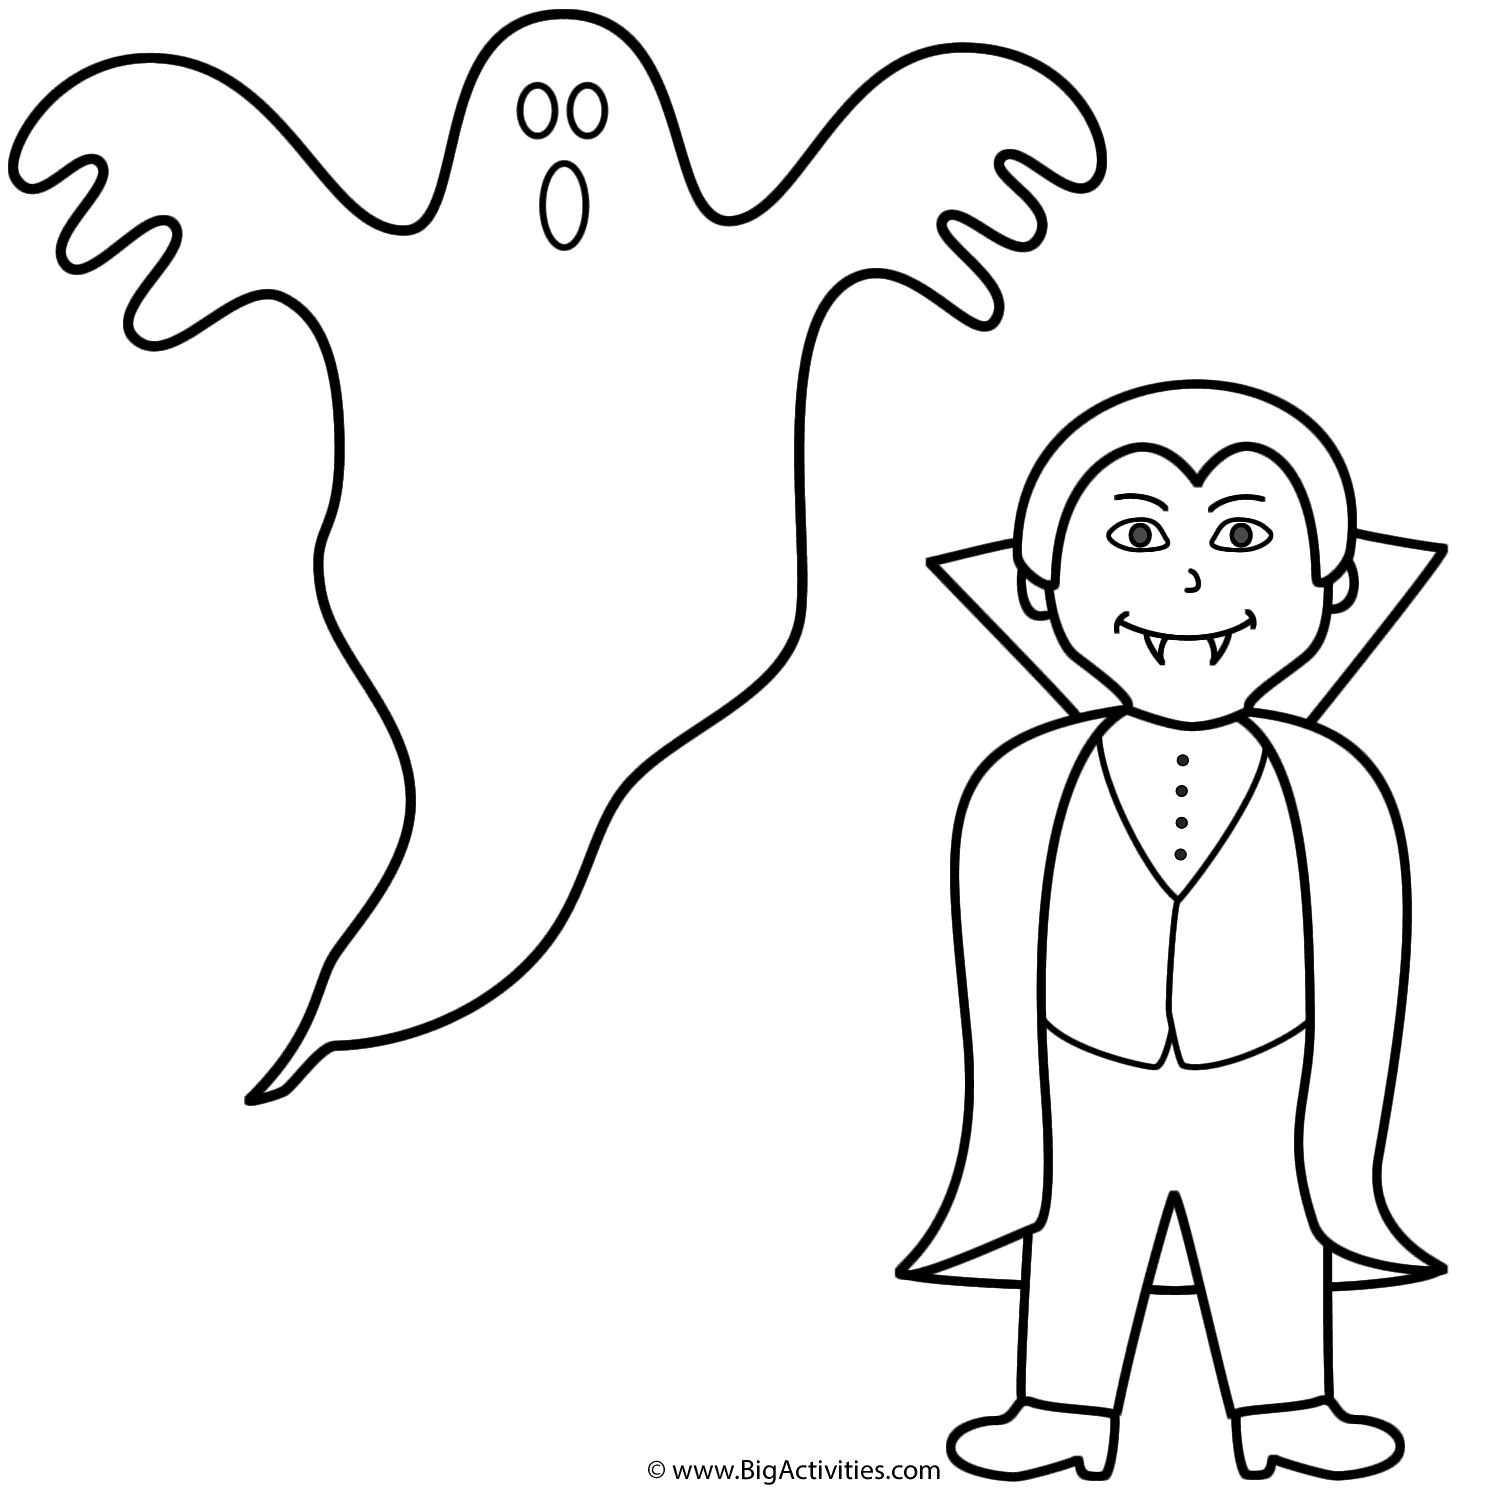 1490x1490 Coloring Pages Of The Vampire Diaries